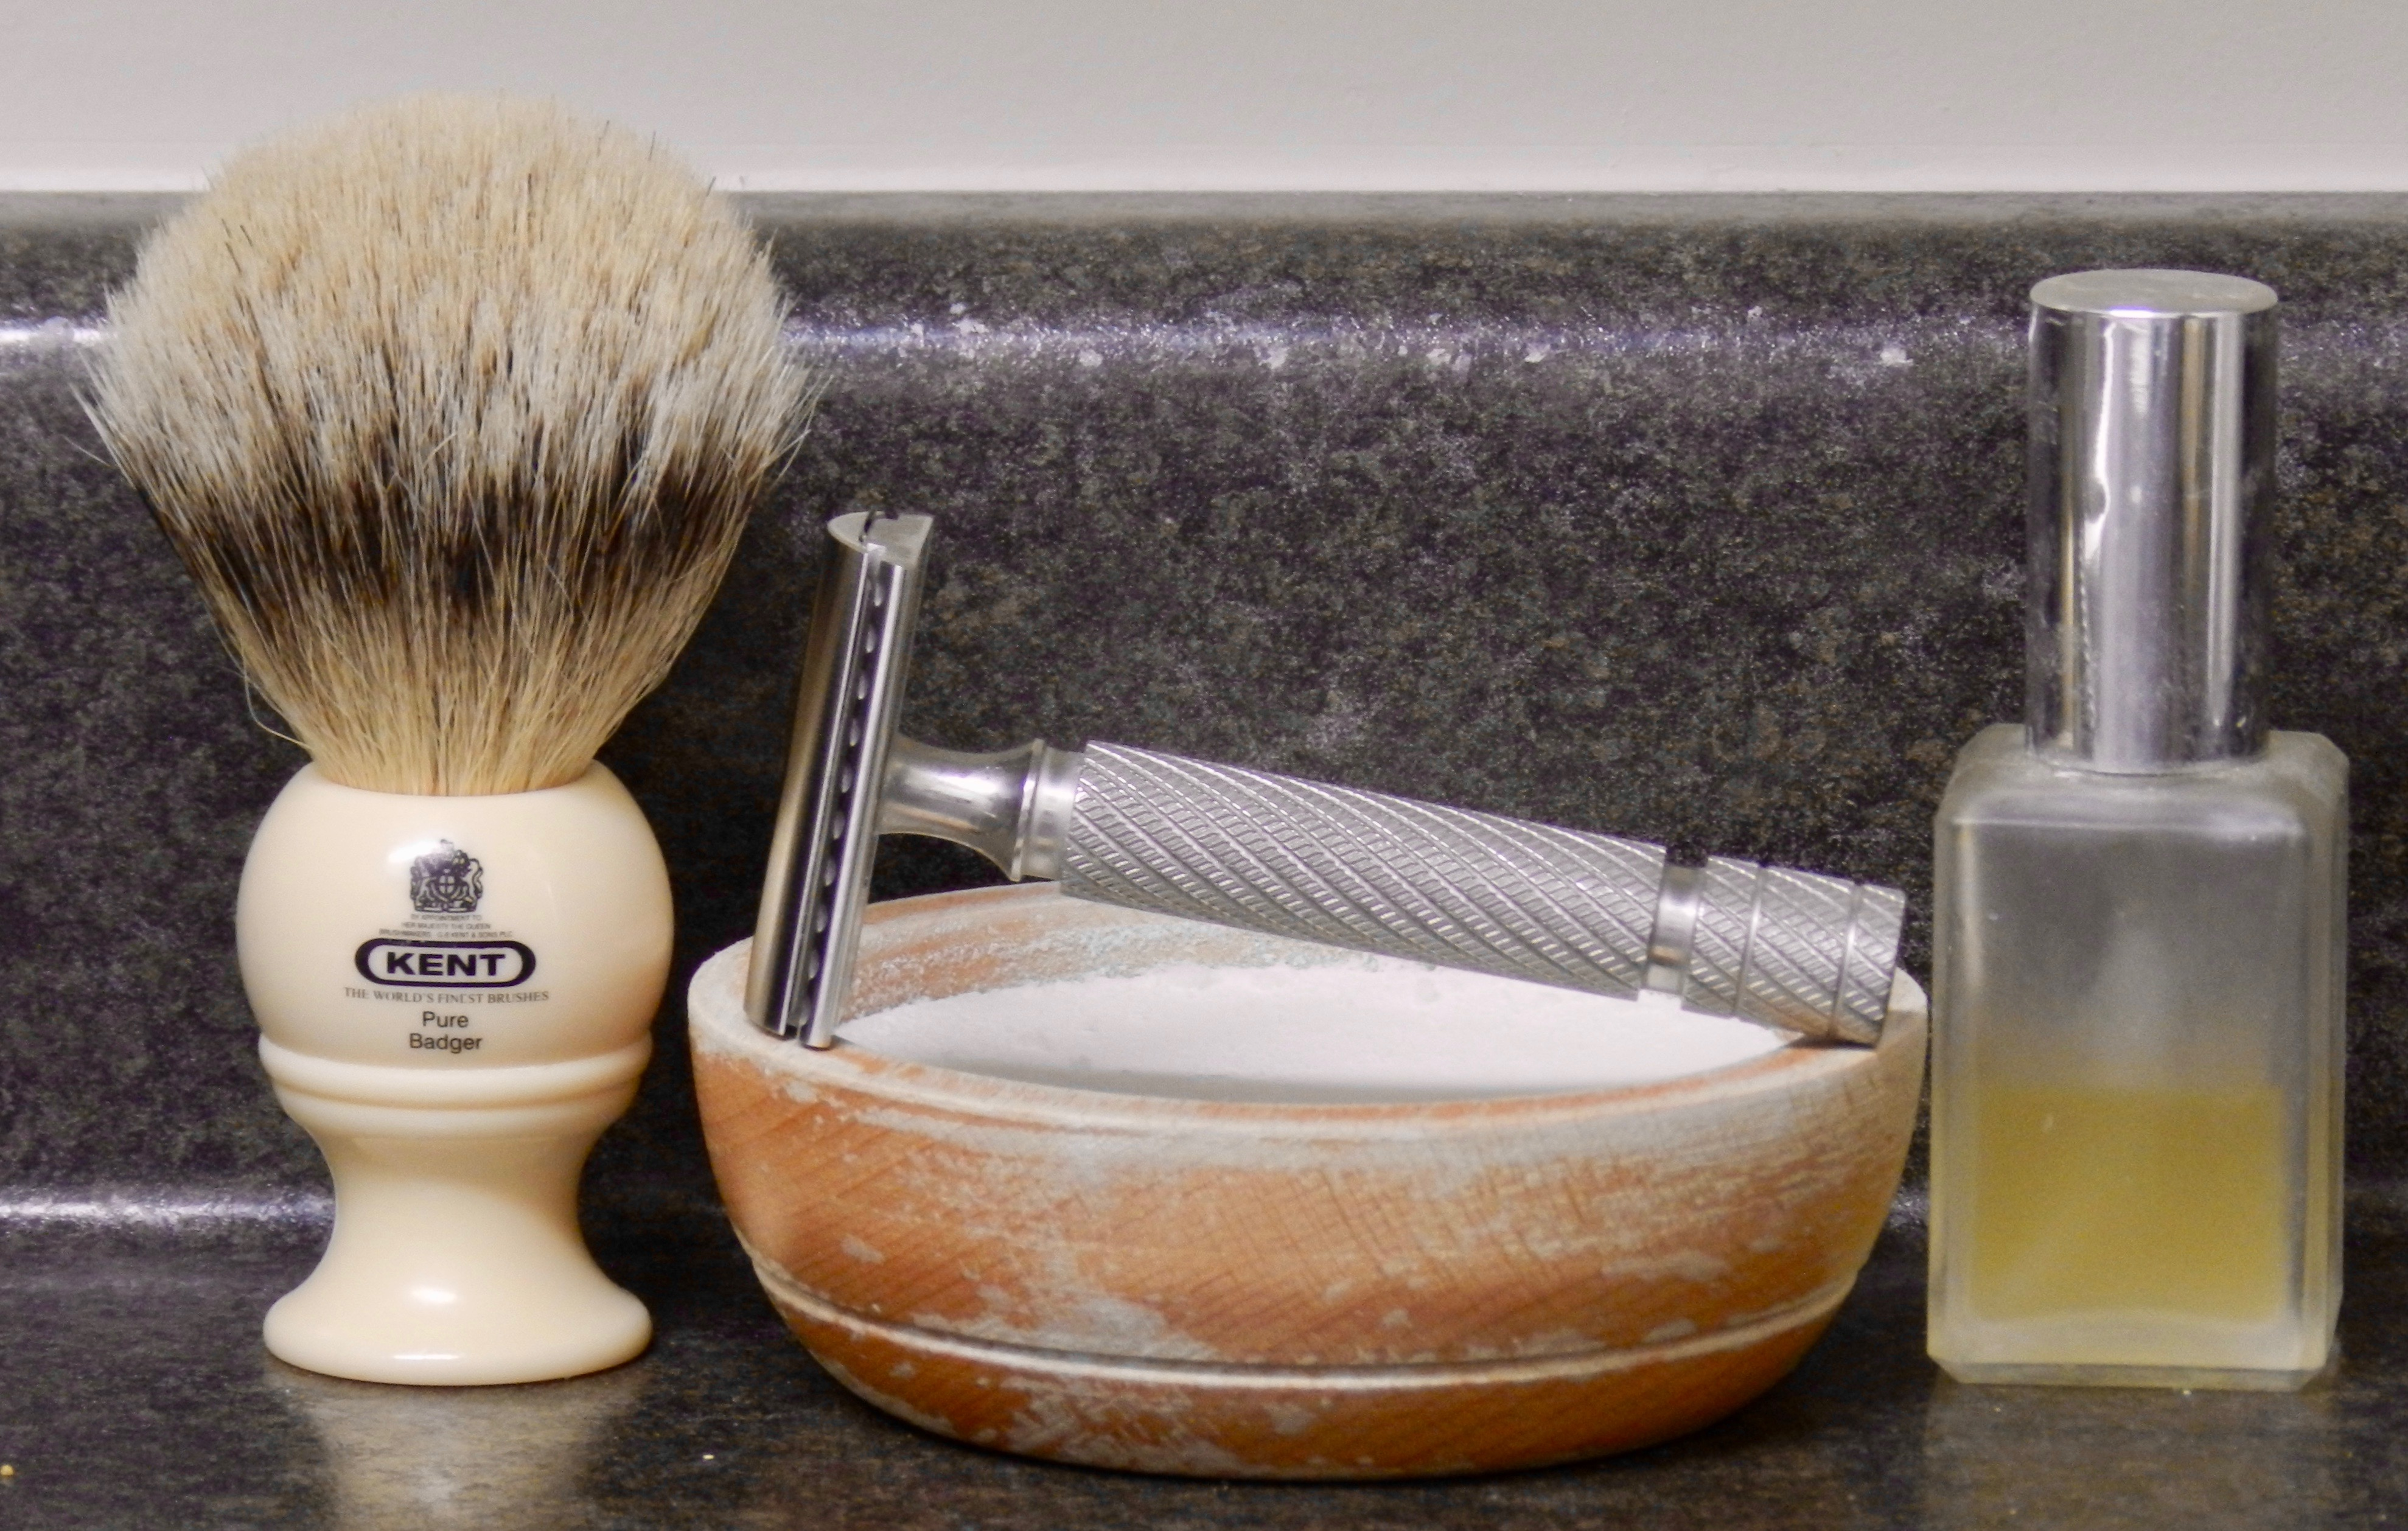 G B  Kent BK4, a fine soap, Above the Tie R1, and Dark Rose